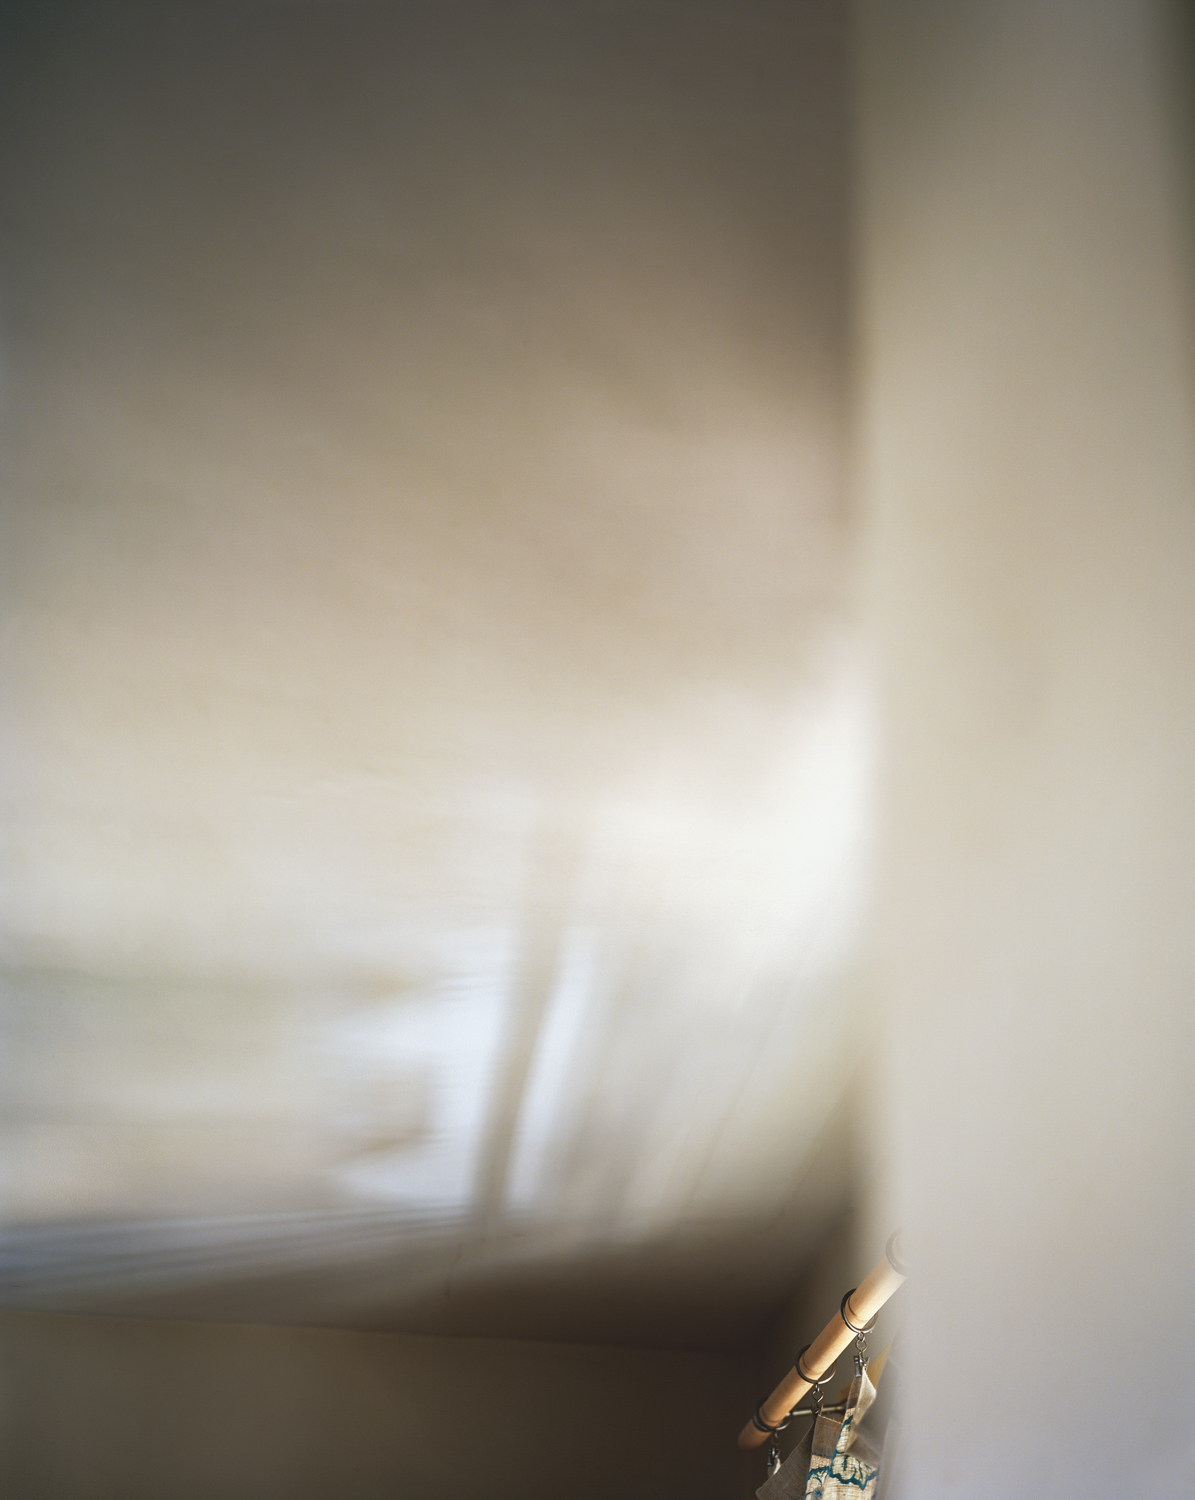 light, form, shadow, kitchen, detail, the everyday